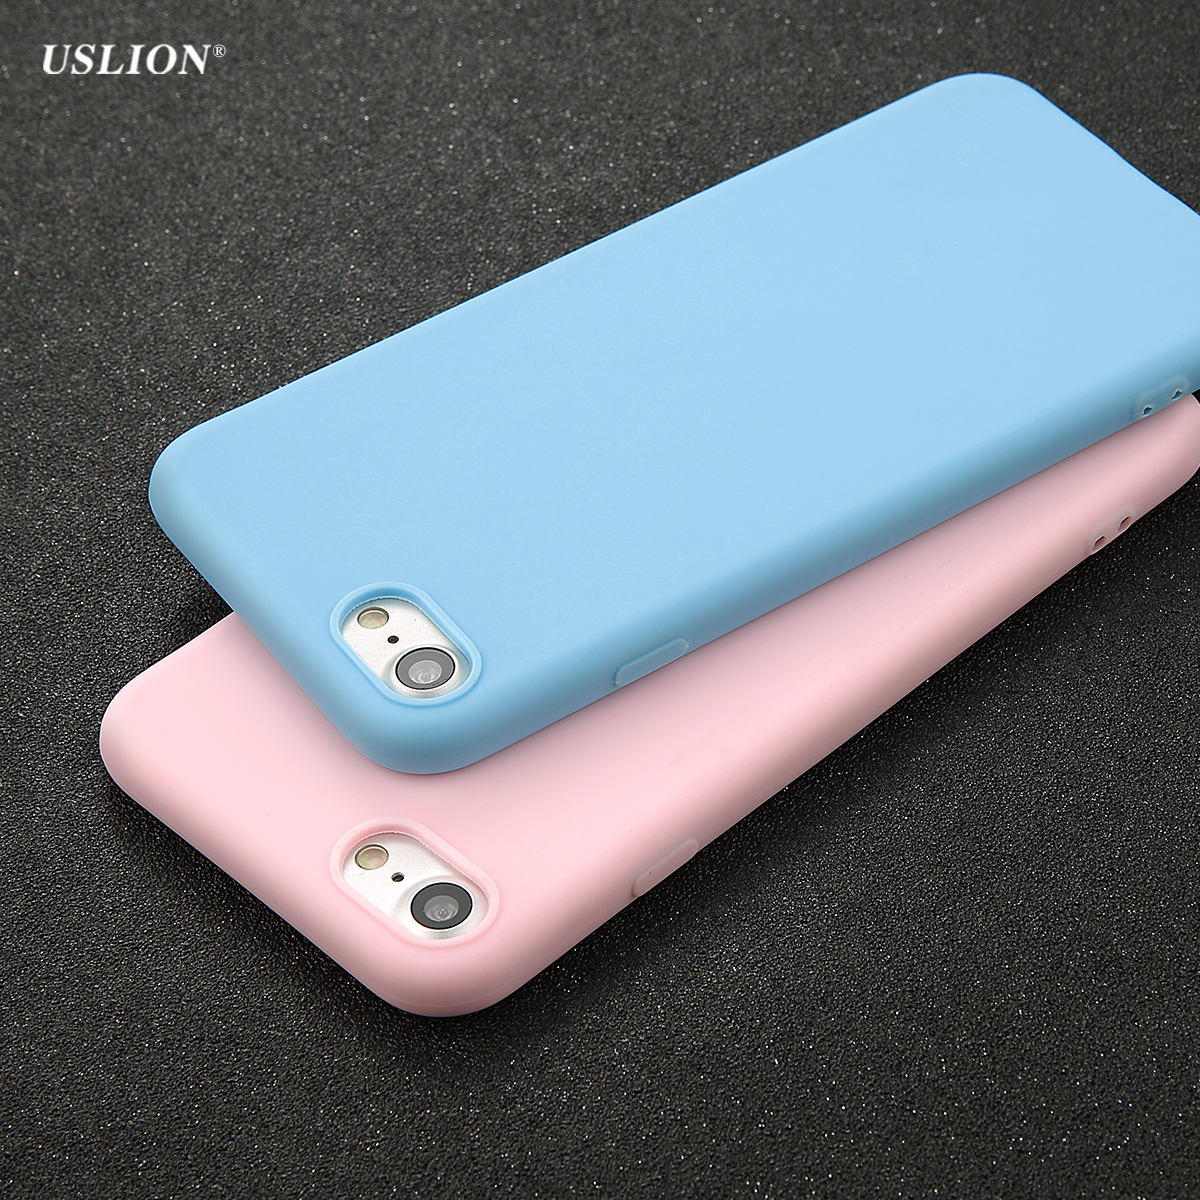 USLION Phone Case For iPhone 7 6 6s 8 X Plus 5 5s SE XR XS Simple Solid Color Ultrathin Soft TPU Cases Candy Color Back Cover 2 5d 9h screen protector tempered glass for iphone 6 6s 5s 7 8 se 5 5c x xs max xr toughened glass for iphone 7 6 6s 8 plus flim